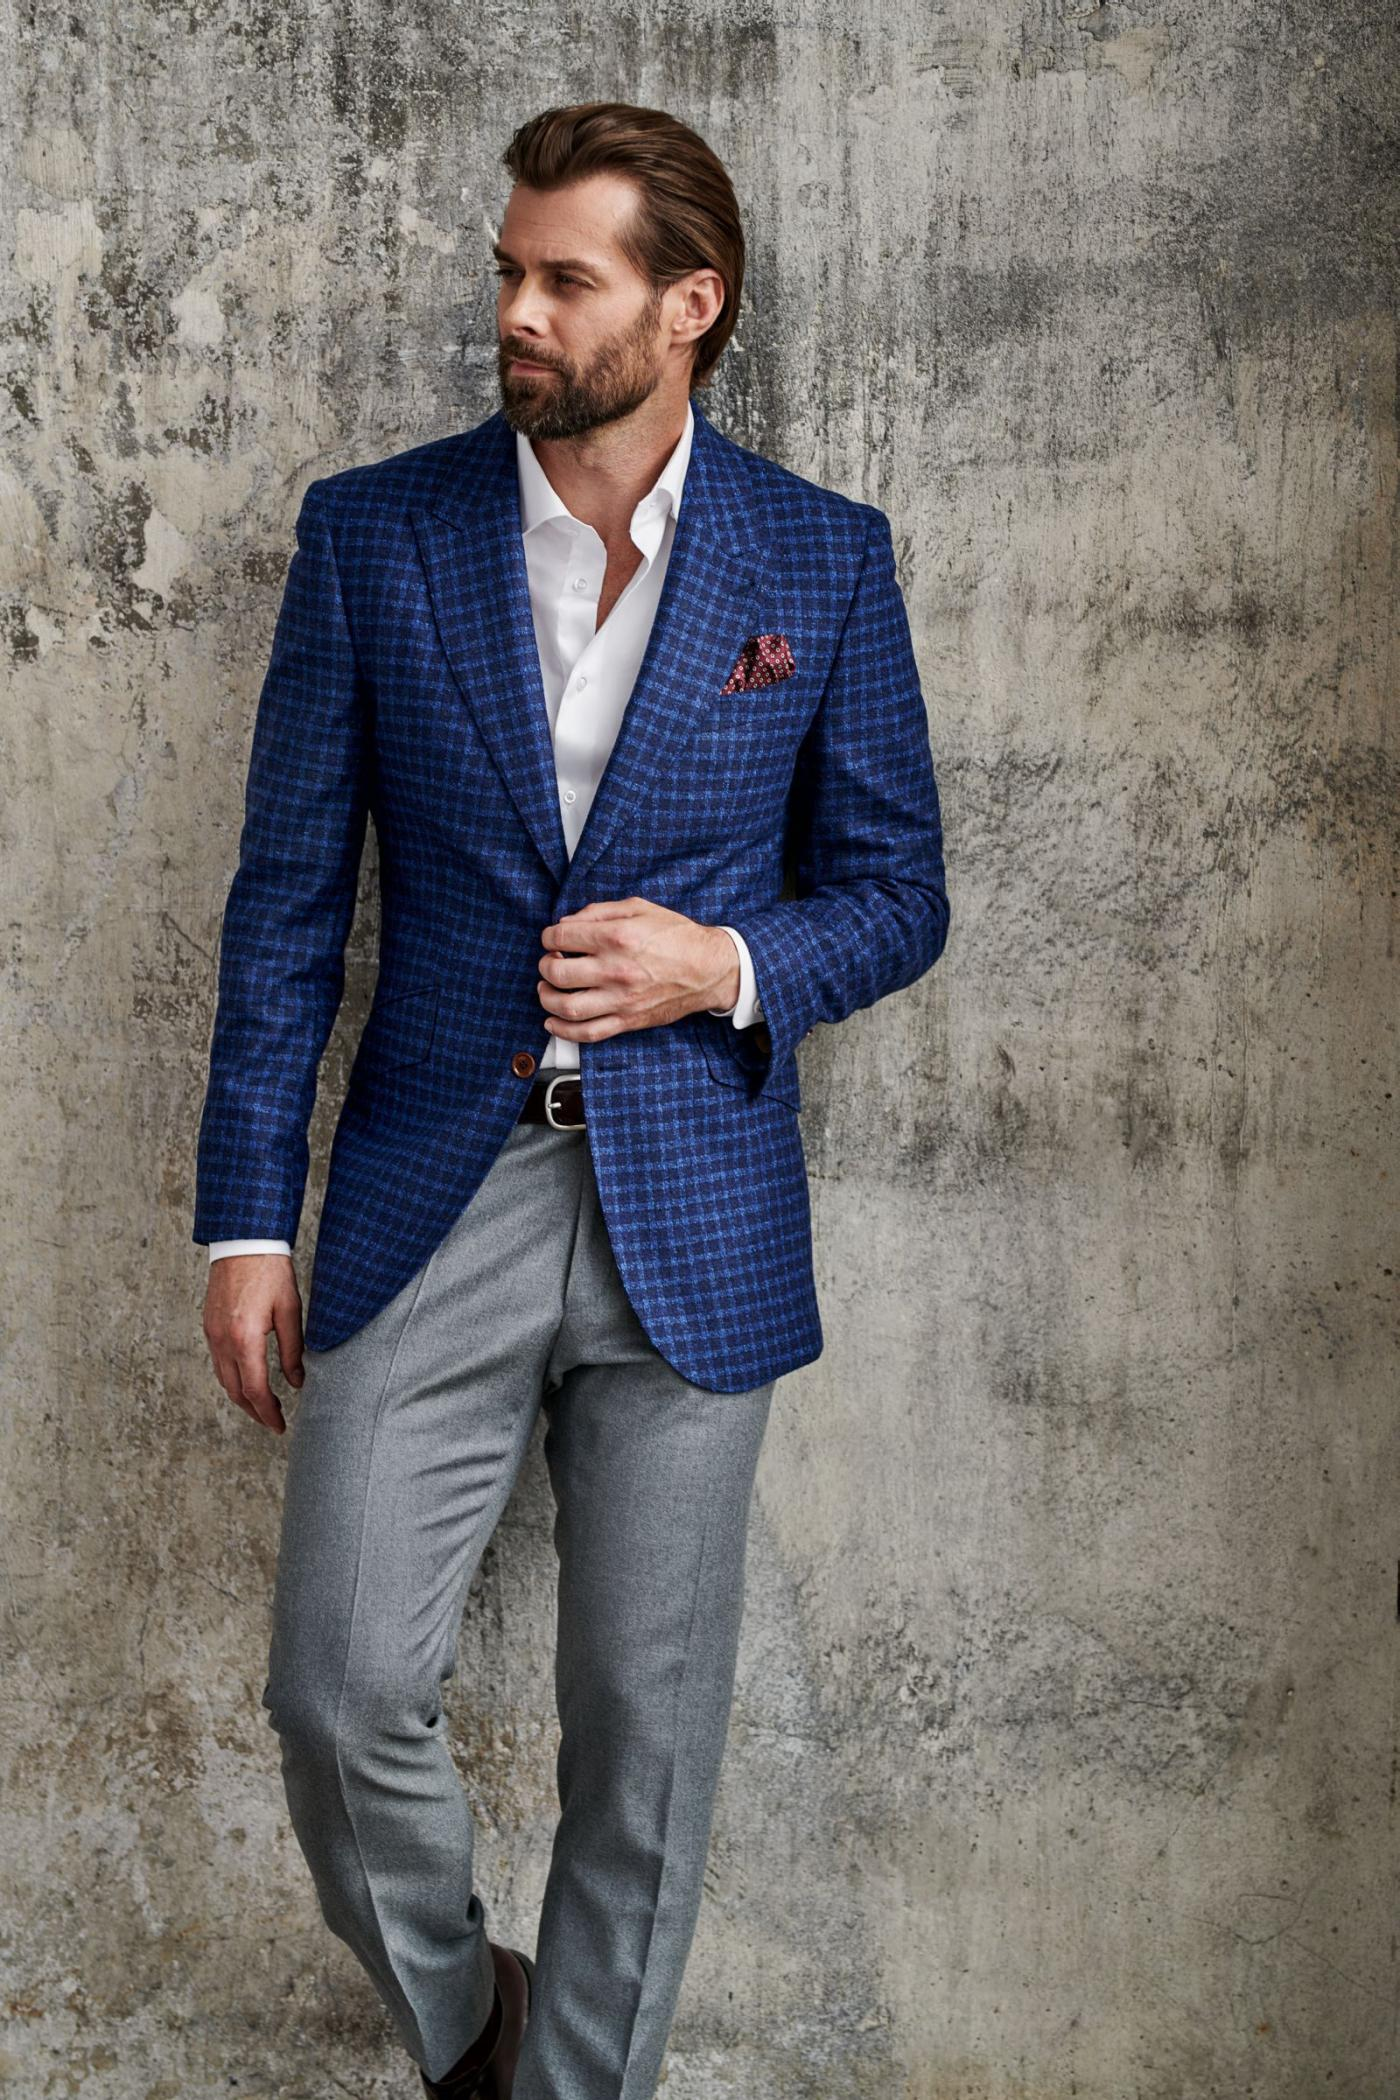 Gentleman's outfit for man it's stylish blue jacket in squares and grey pants